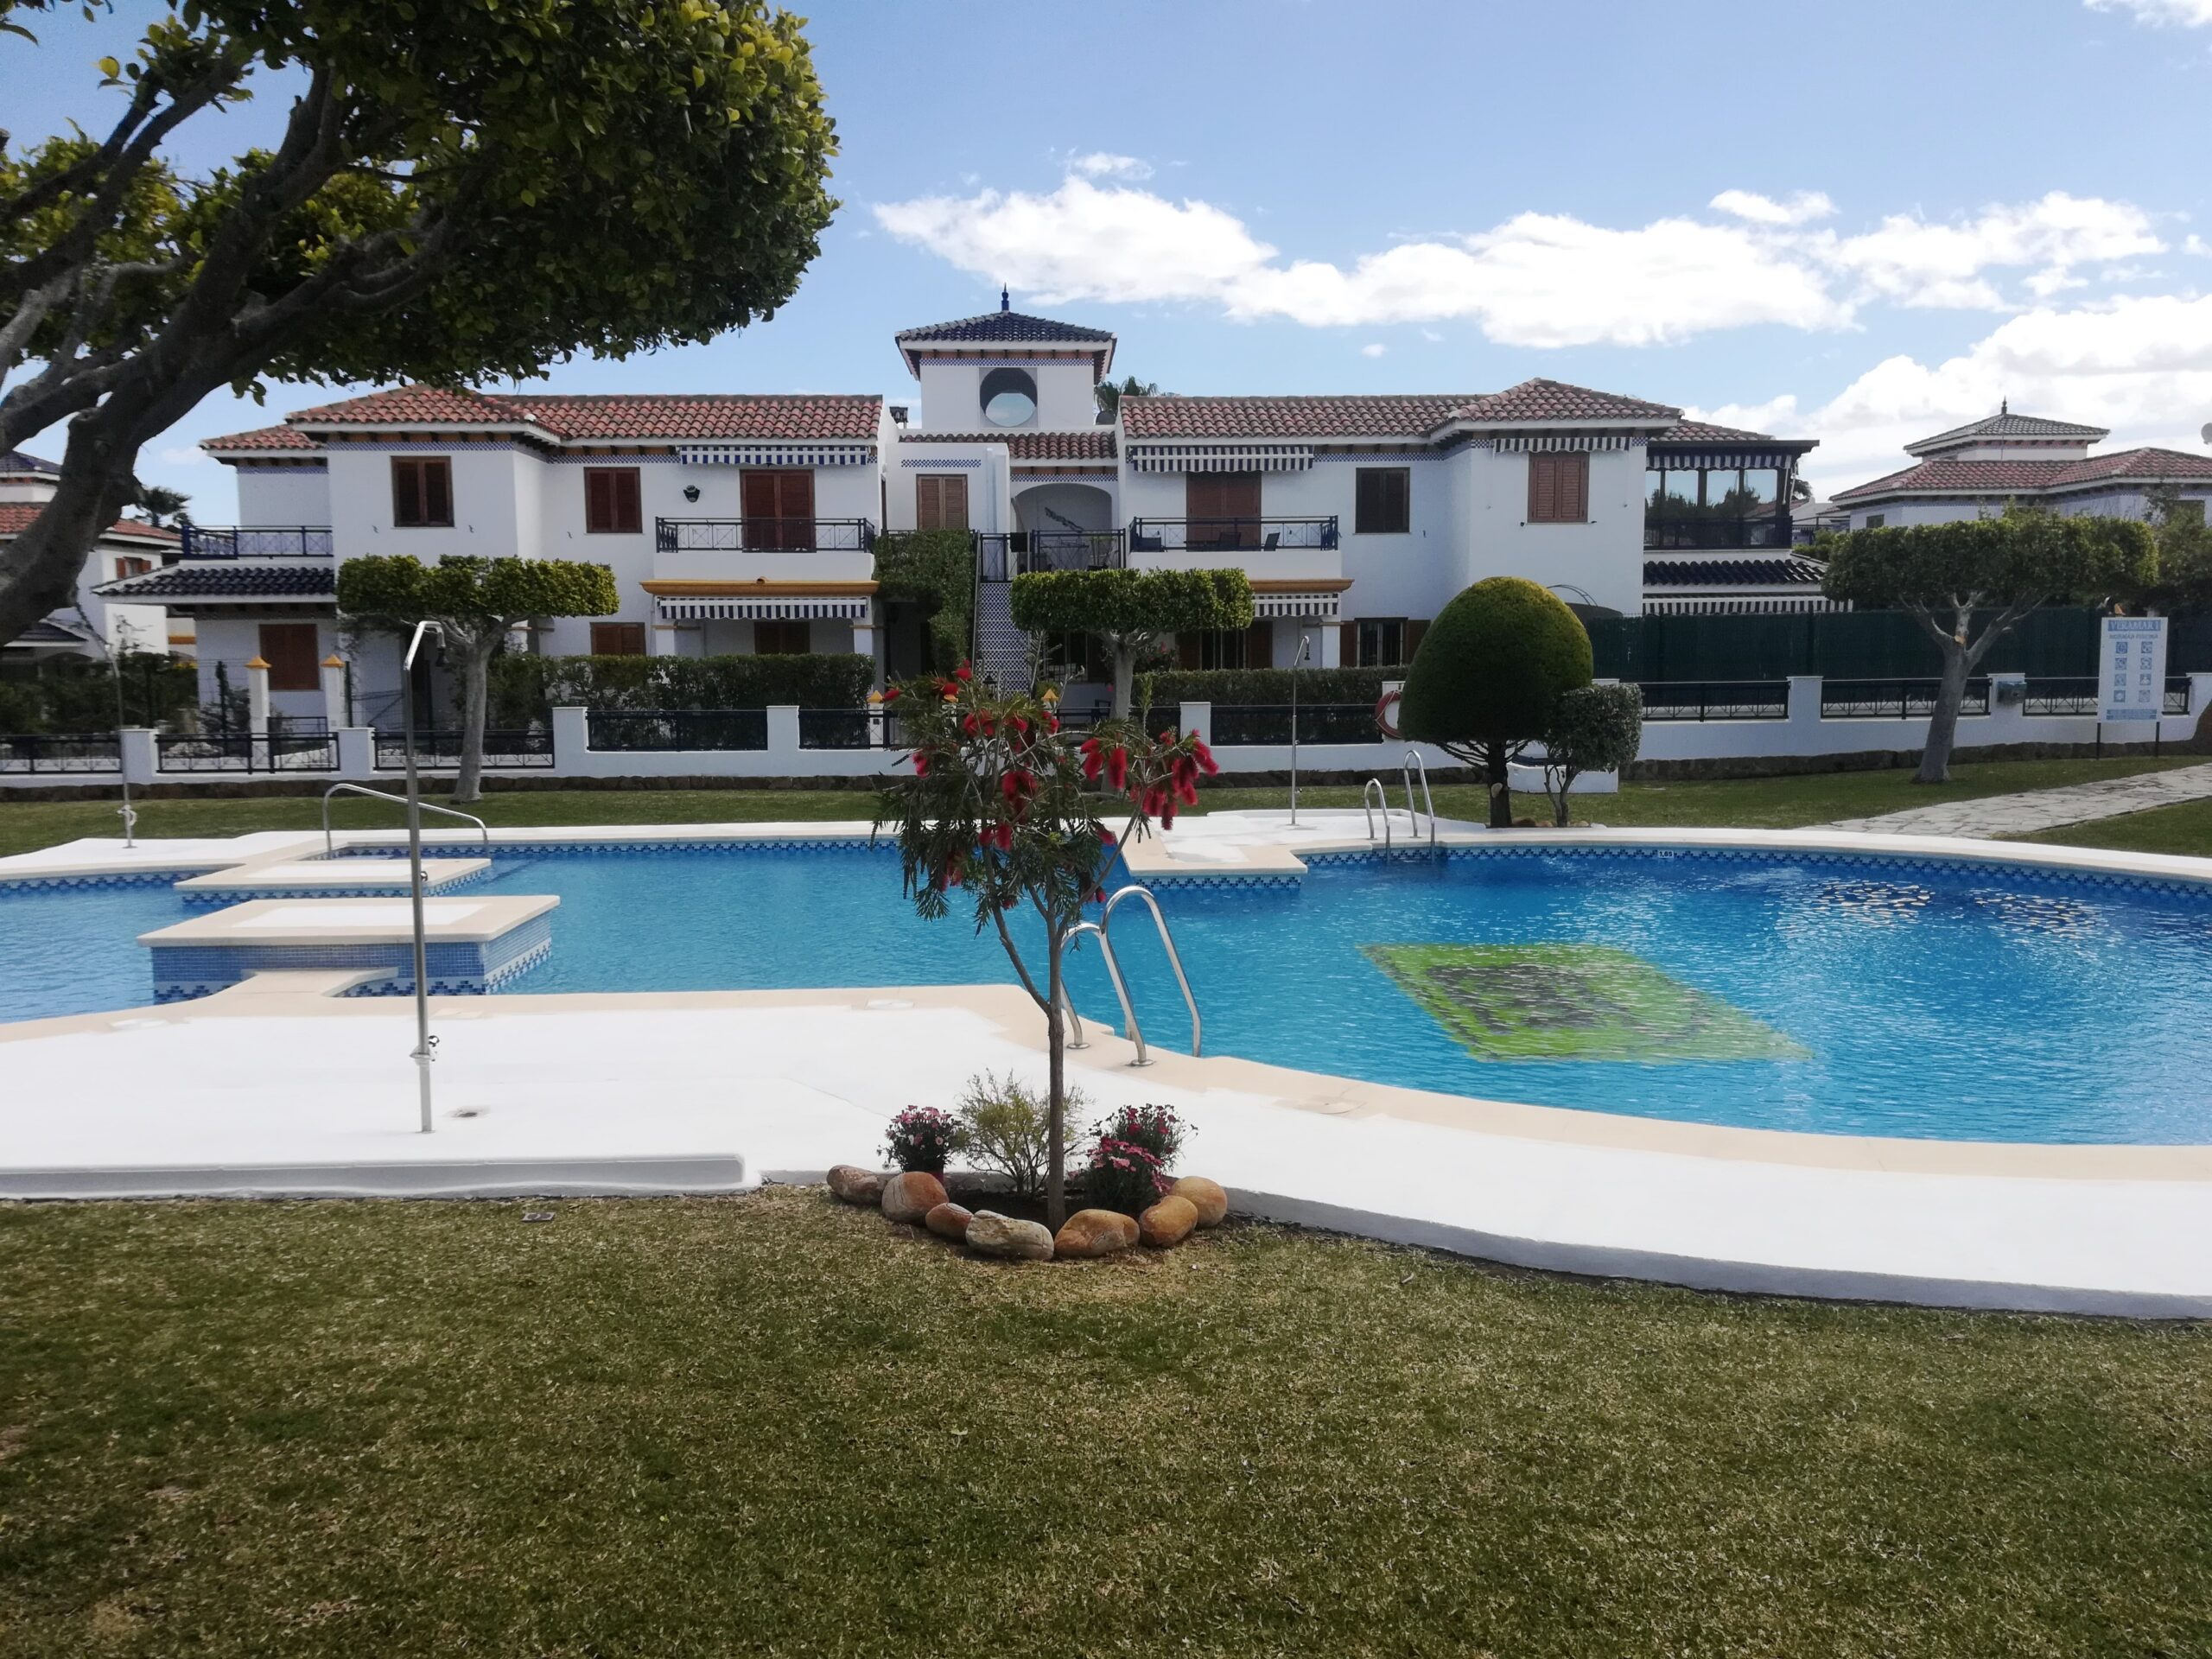 Appartement te koop in Vera Playa (Spanje, Costa de Almeria)